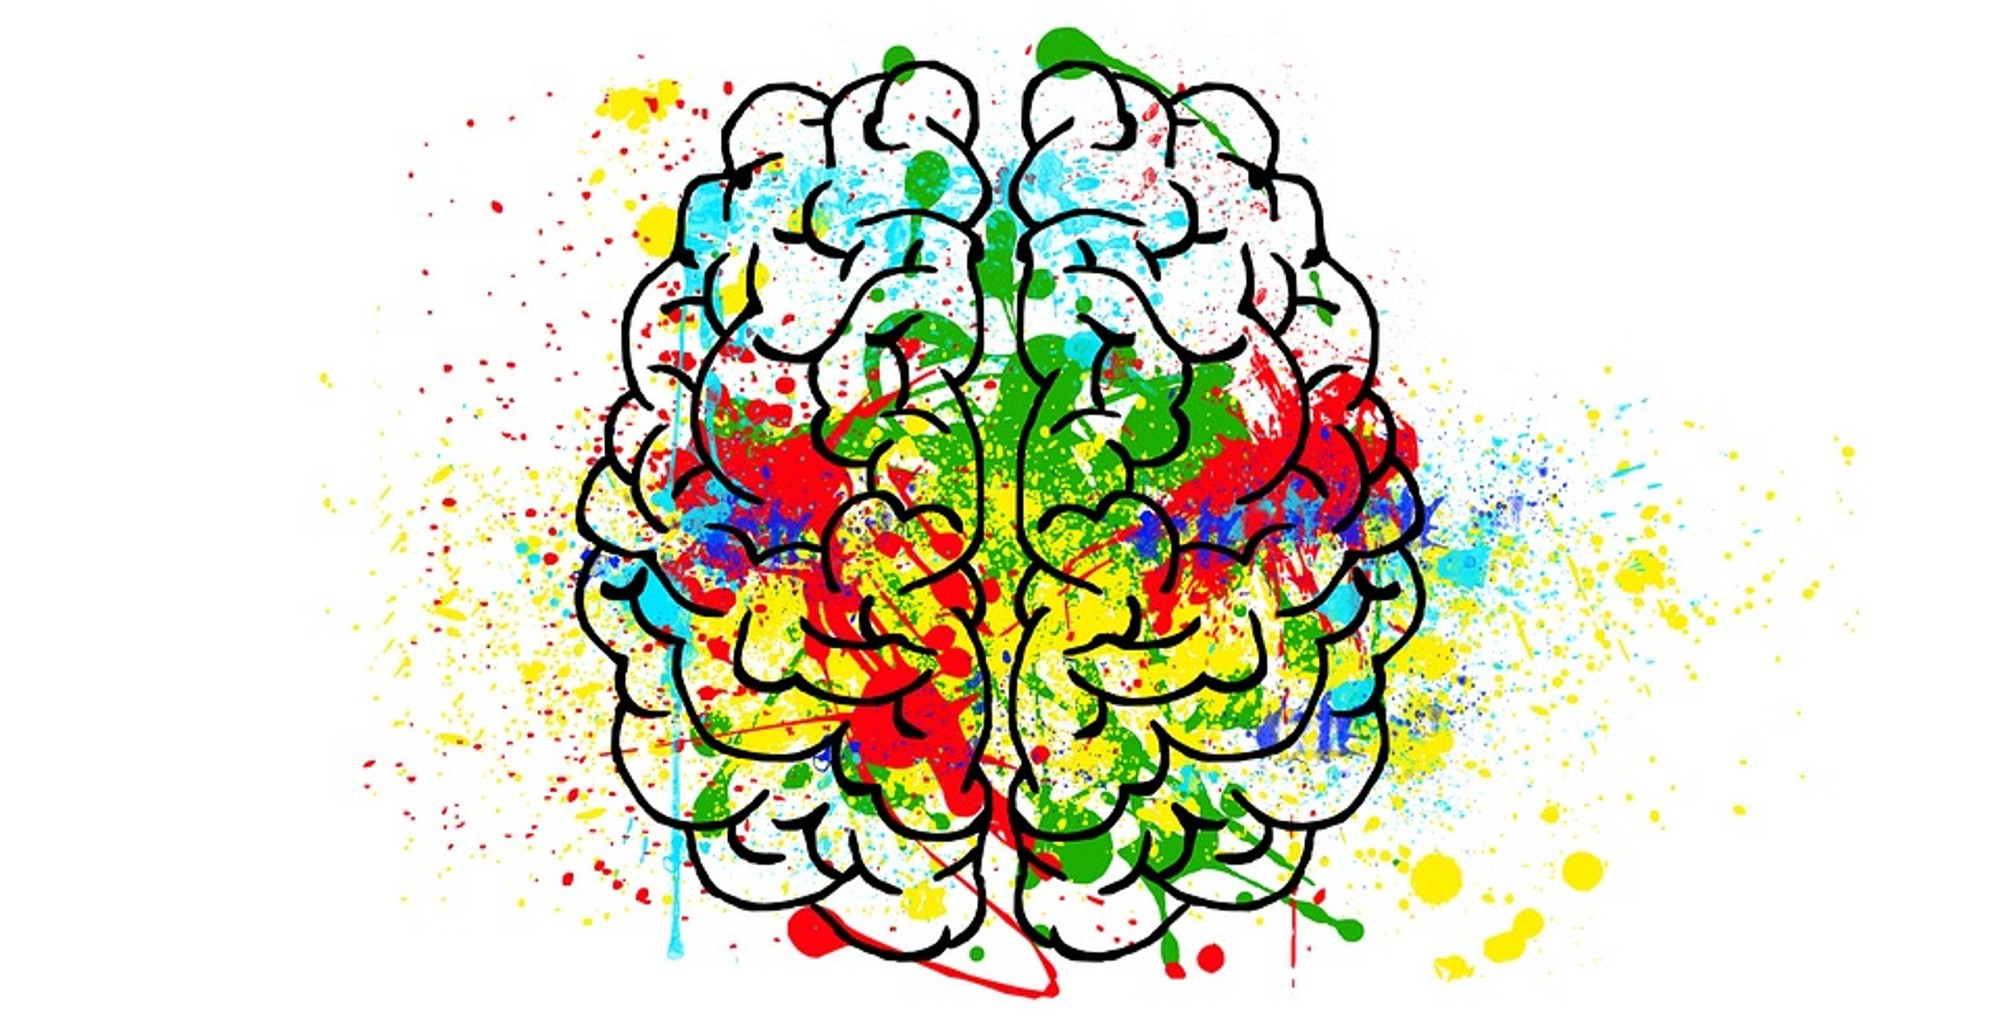 colorful paint splattered on an outline of a brain